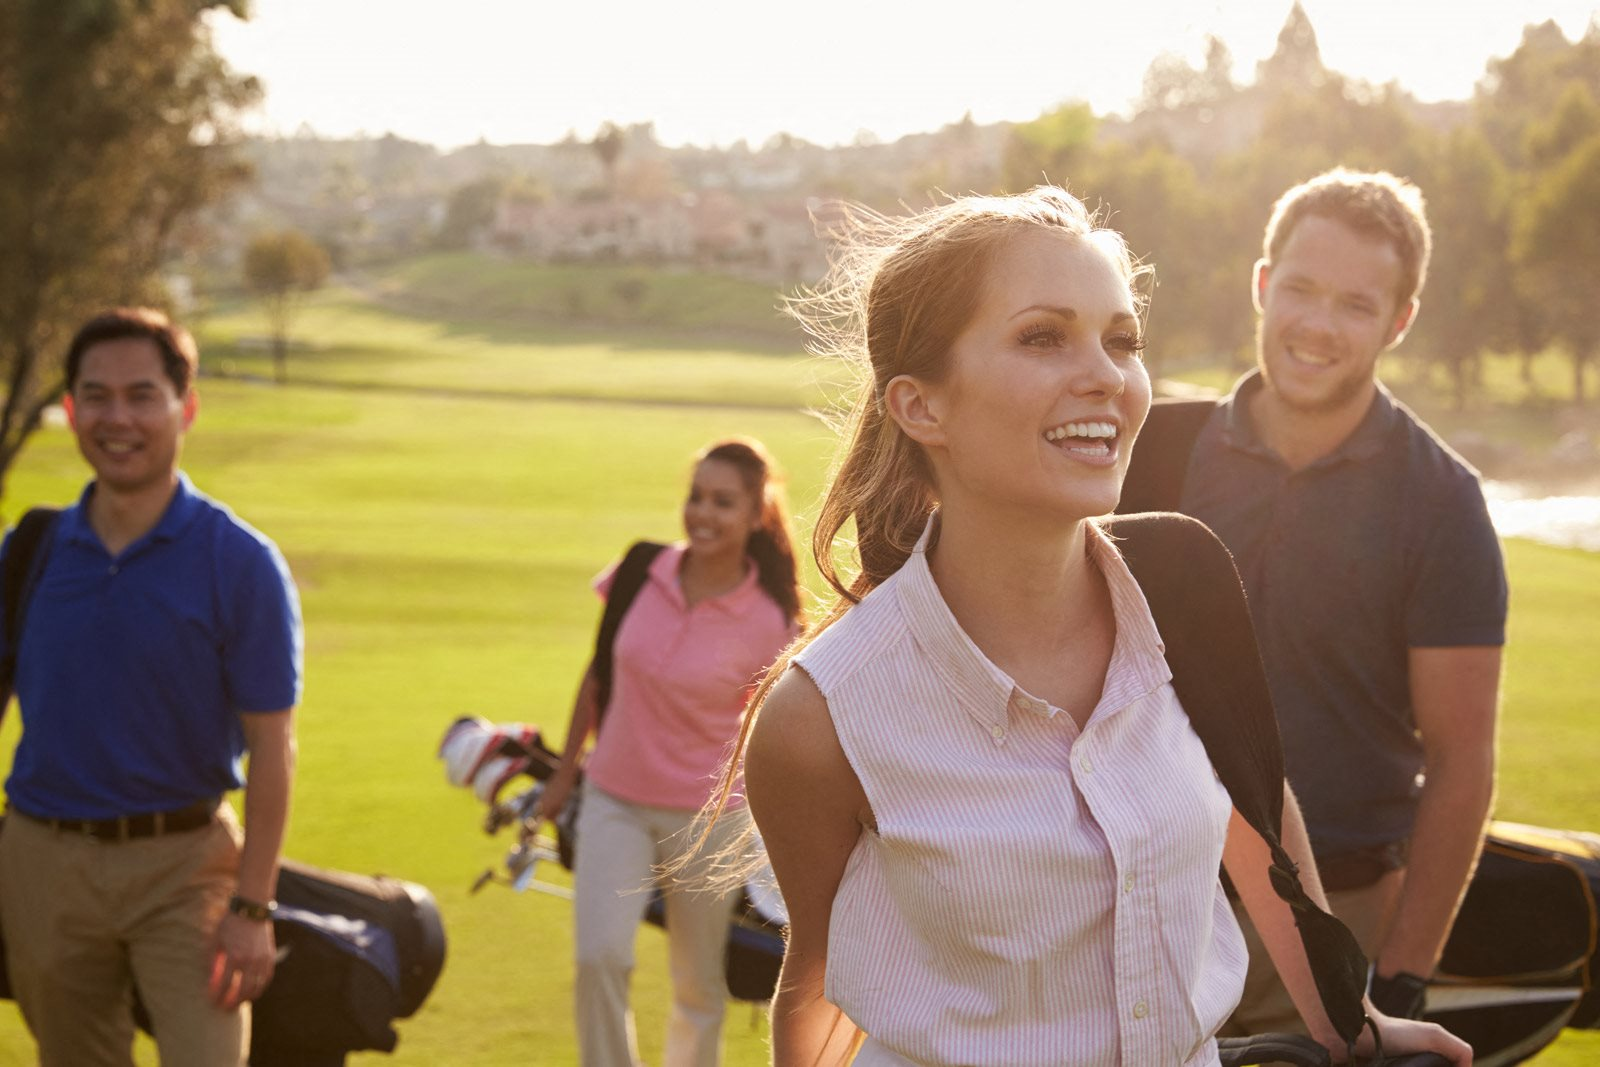 Experience Golfing the Doral Way at Windsor at Doral, Doral, 33178